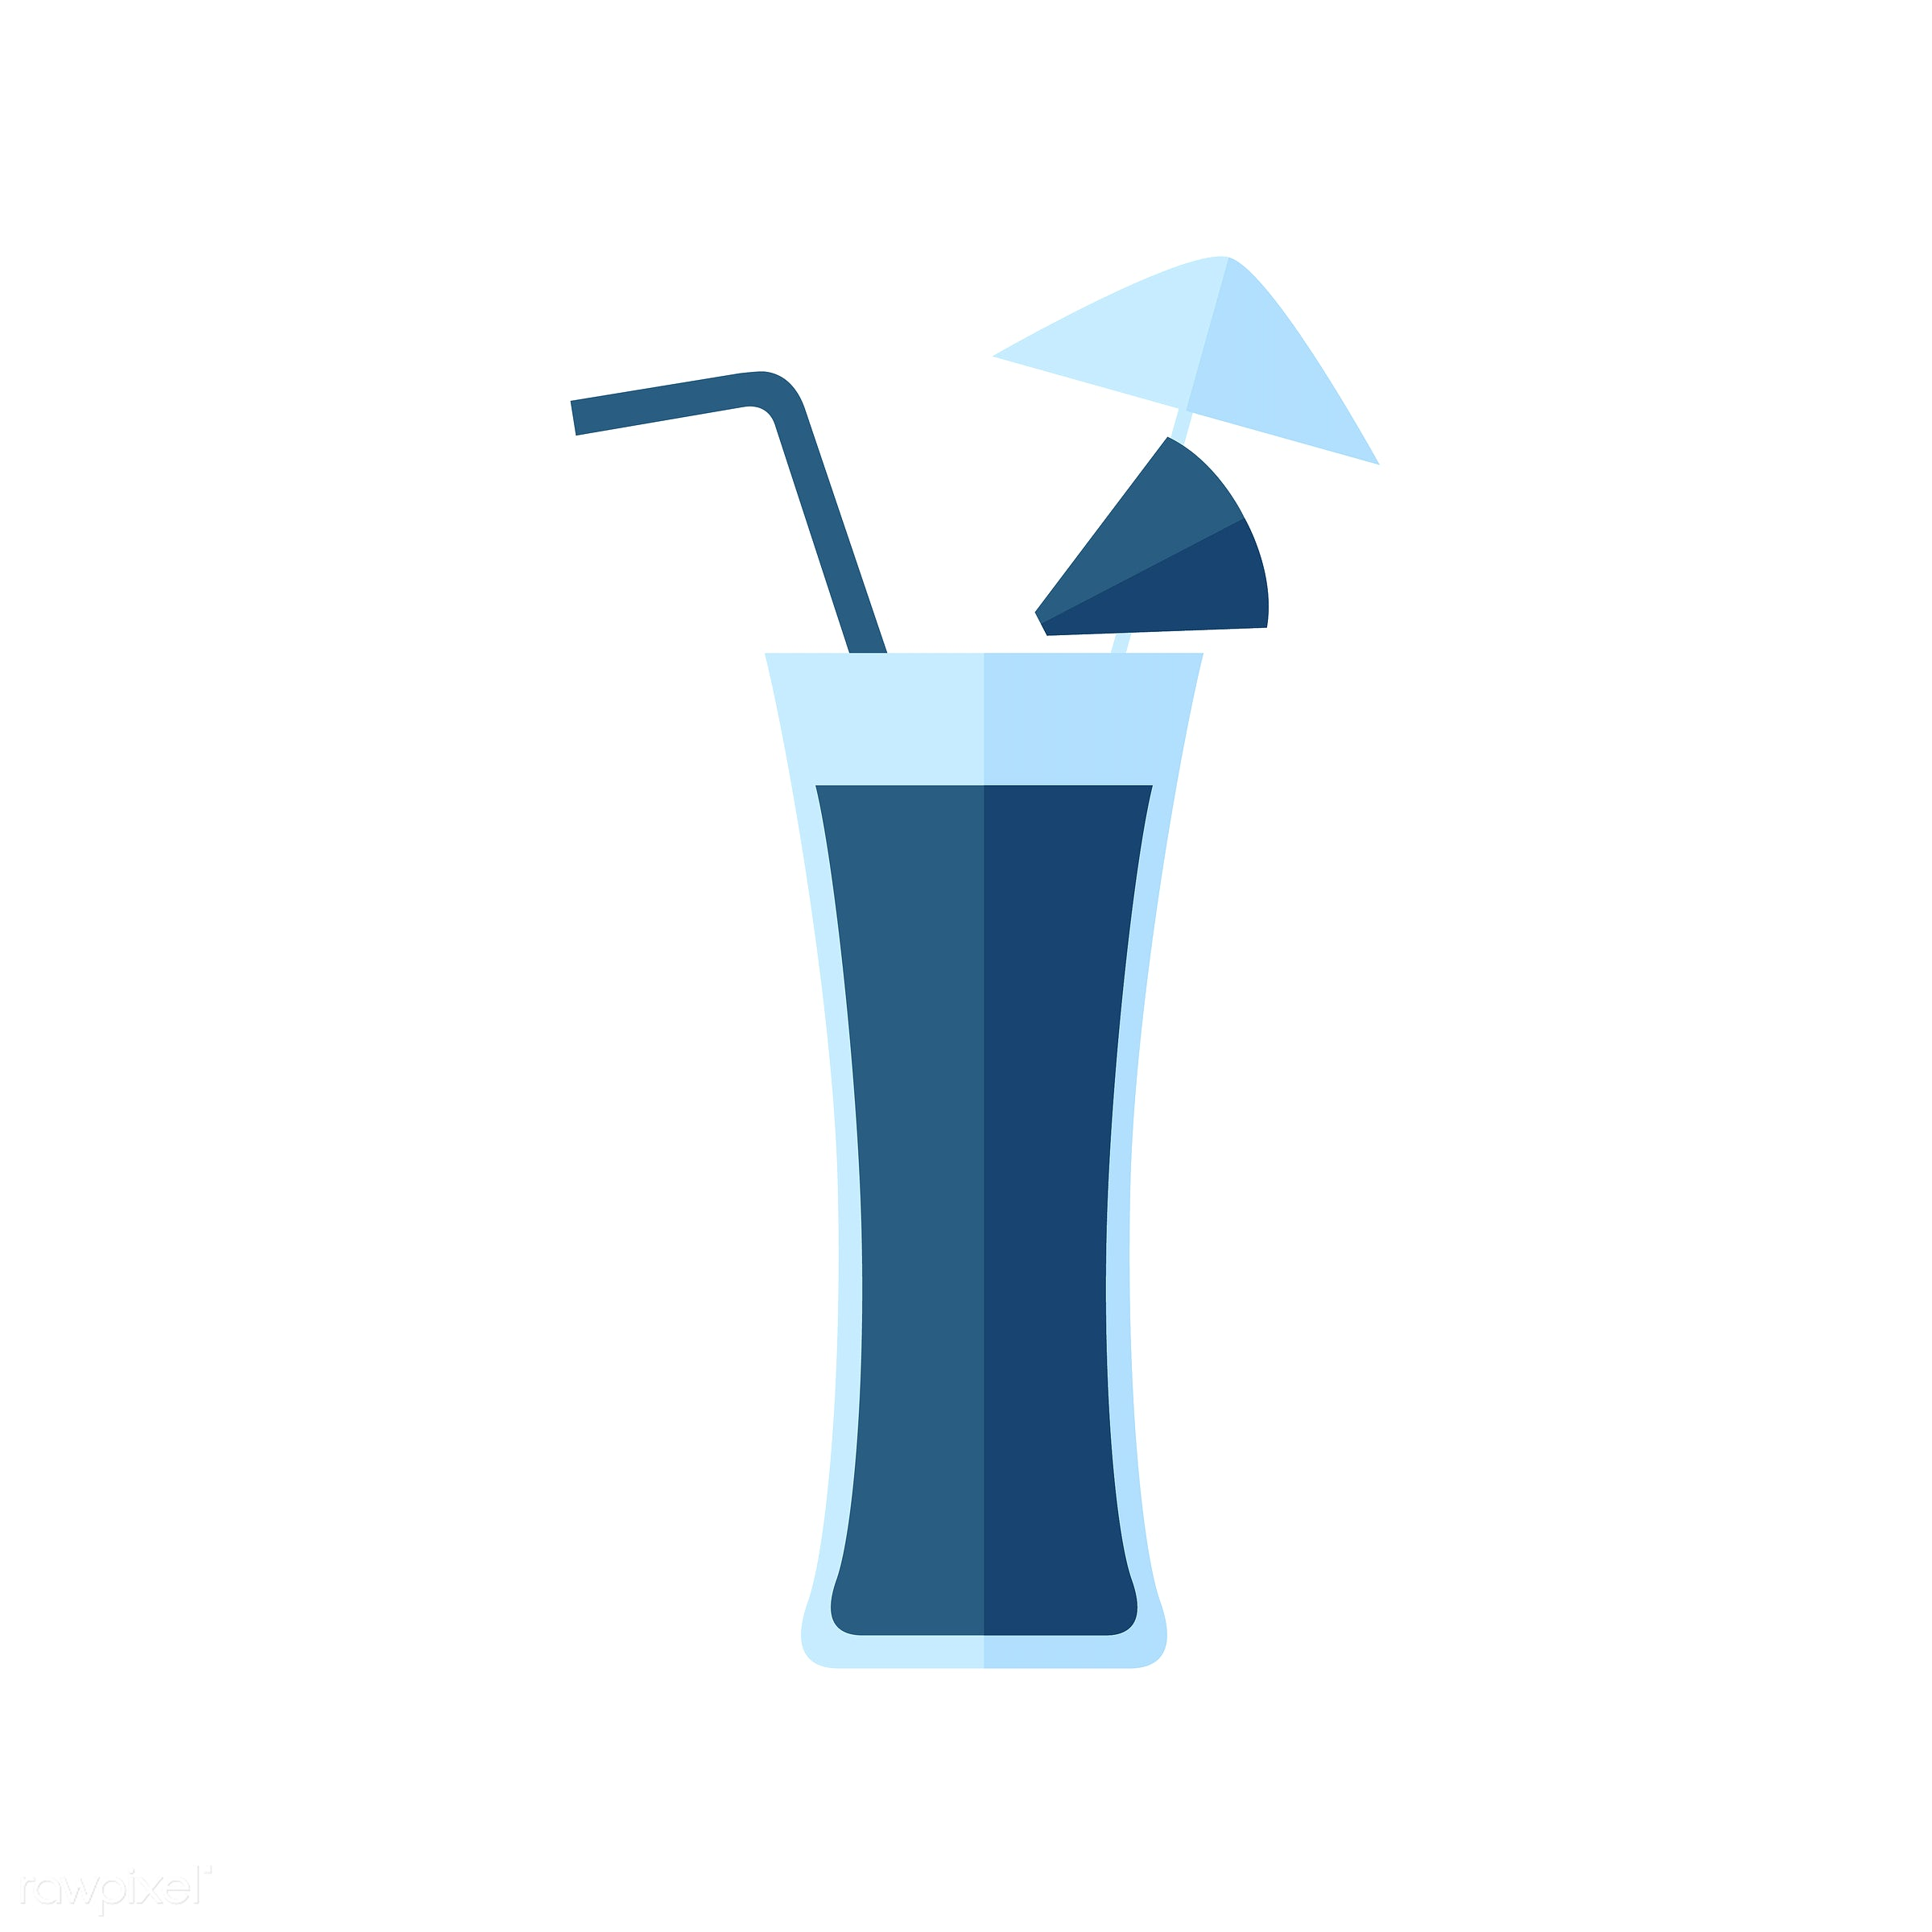 Umbrella cocktail vector - vector, graphic, illustration, icon, symbol, colorful, cute, drink, beverage, water, cocktail,...